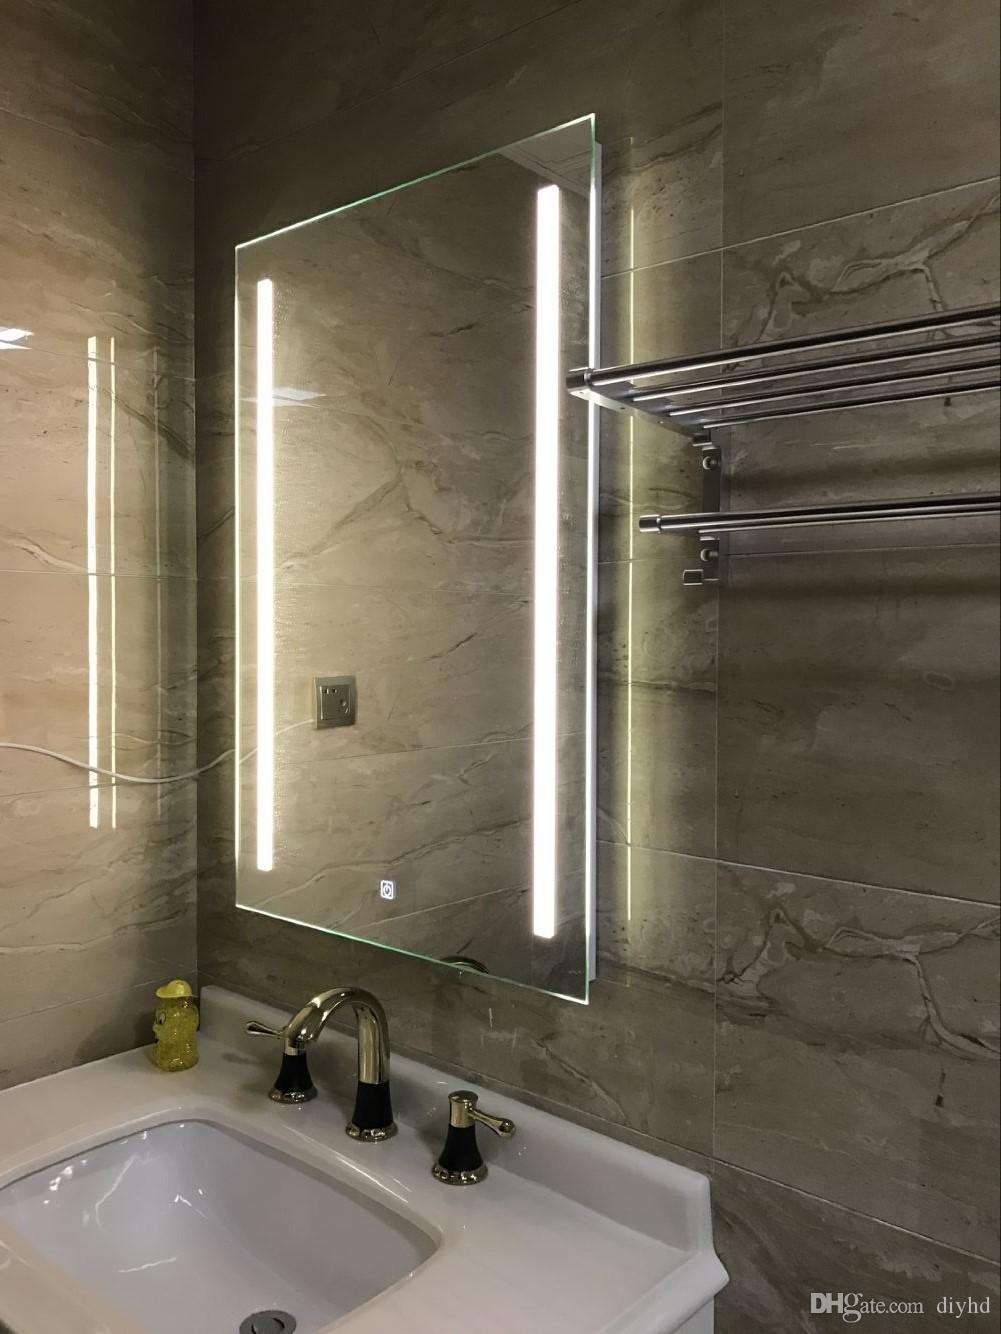 Diyhd Wall Mount Led Backlit Lighted Bathroom Mirror Vanity Defogger 2  Vertical Lights Rectangular Touch Light Mirror Framed Bathroom Mirrors  Framed Large ...